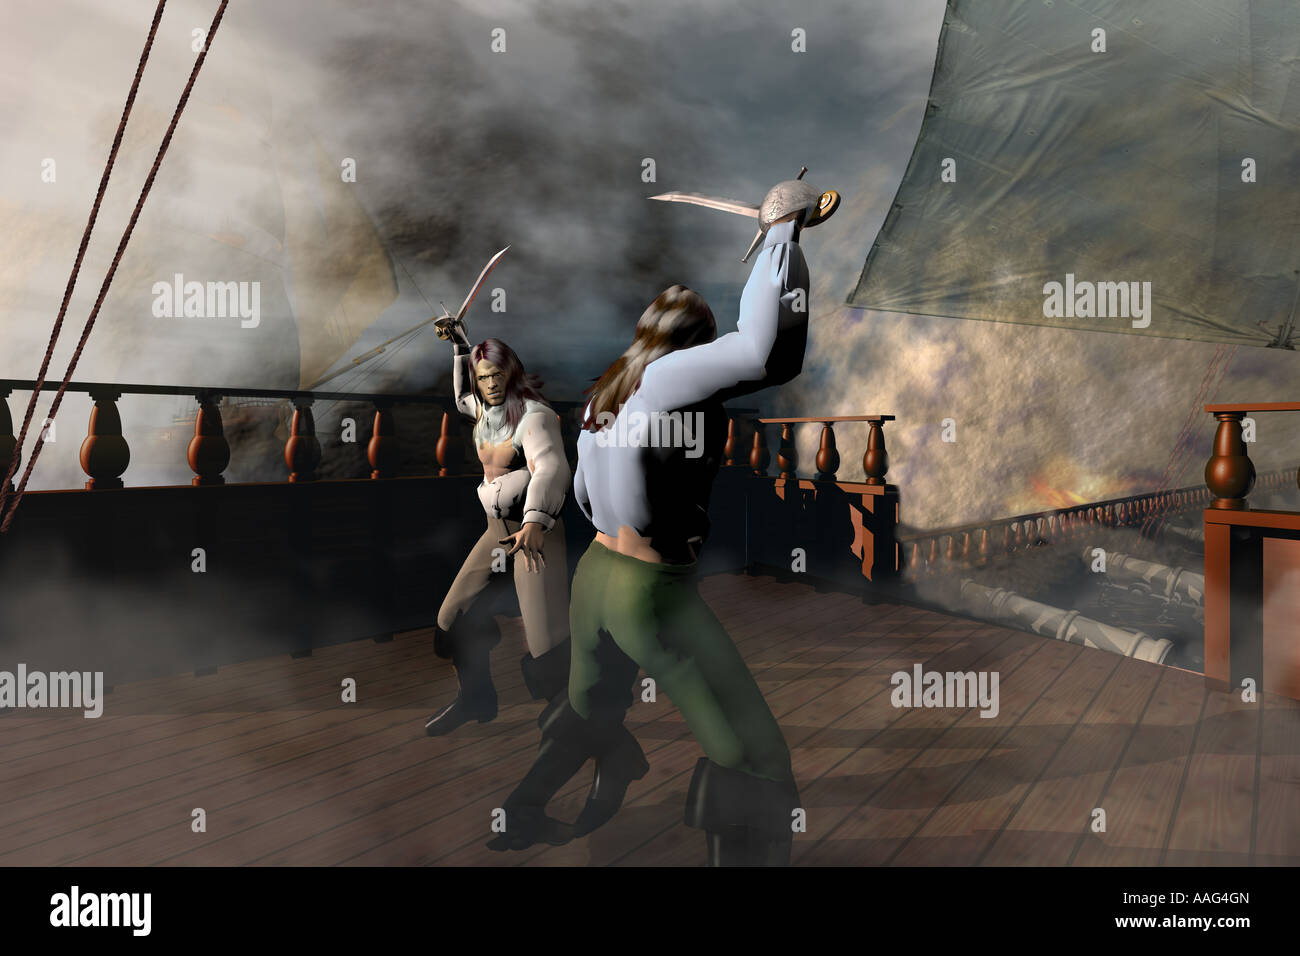 Pirates fighting aboard ship. - Stock Image